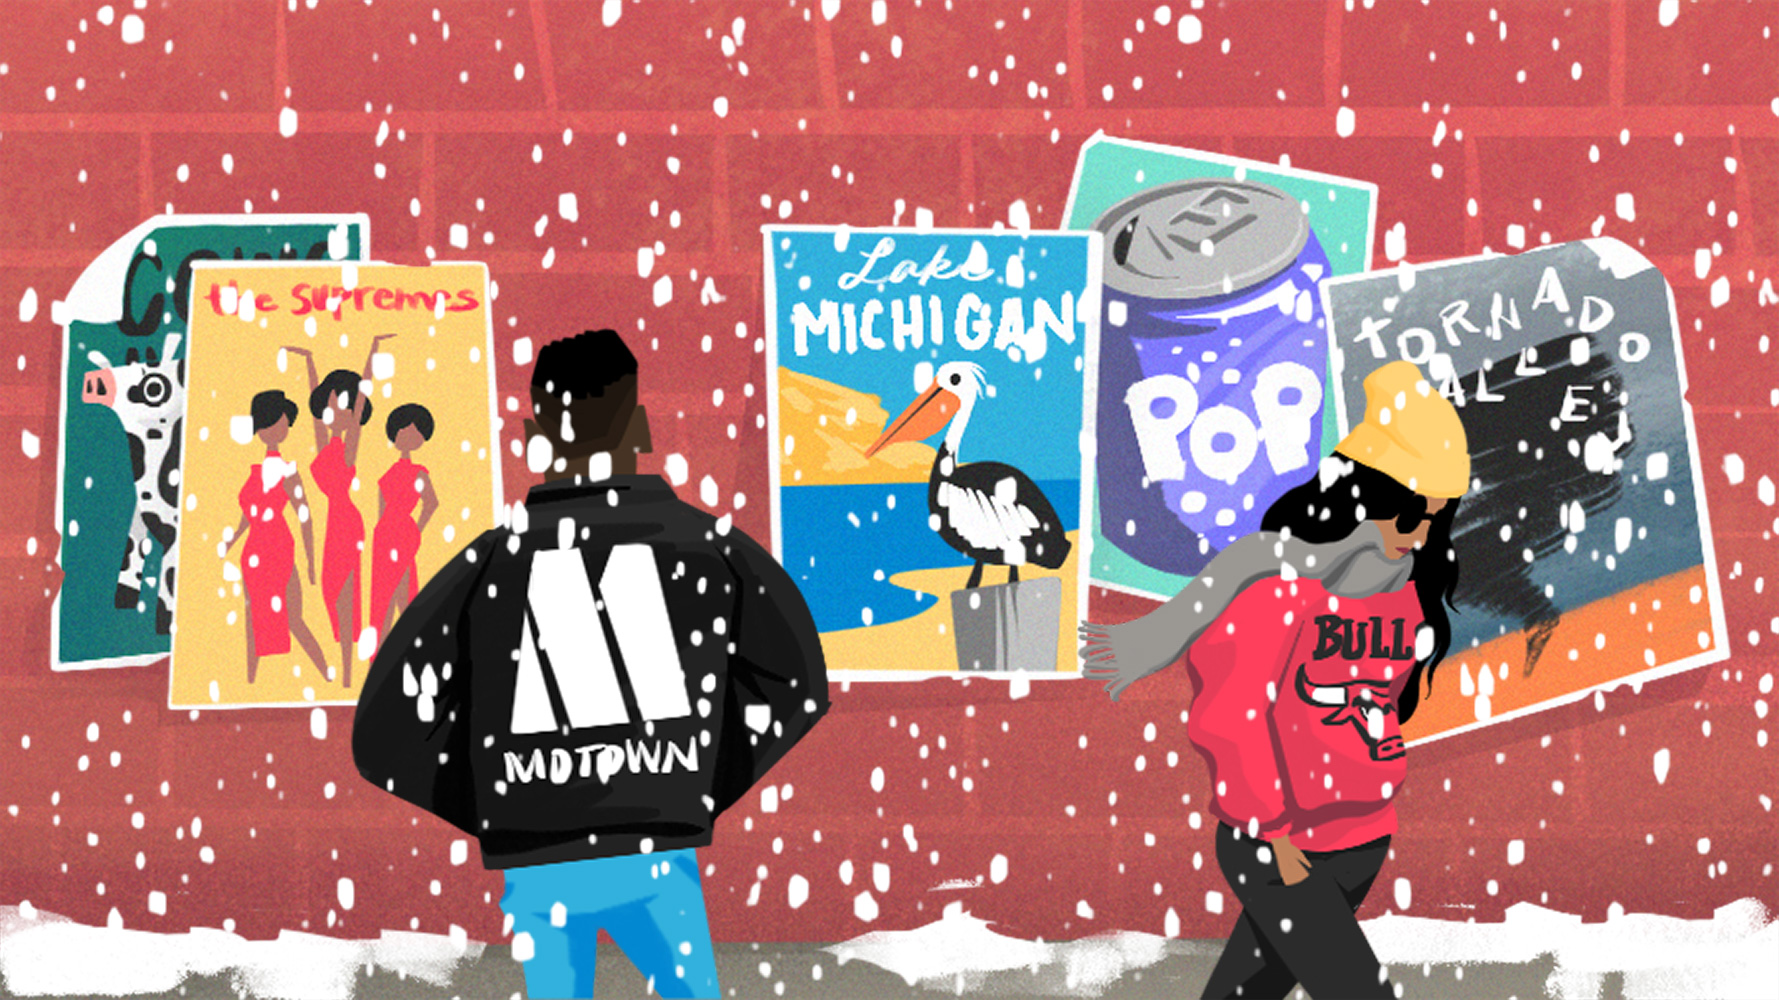 Midwest_snow